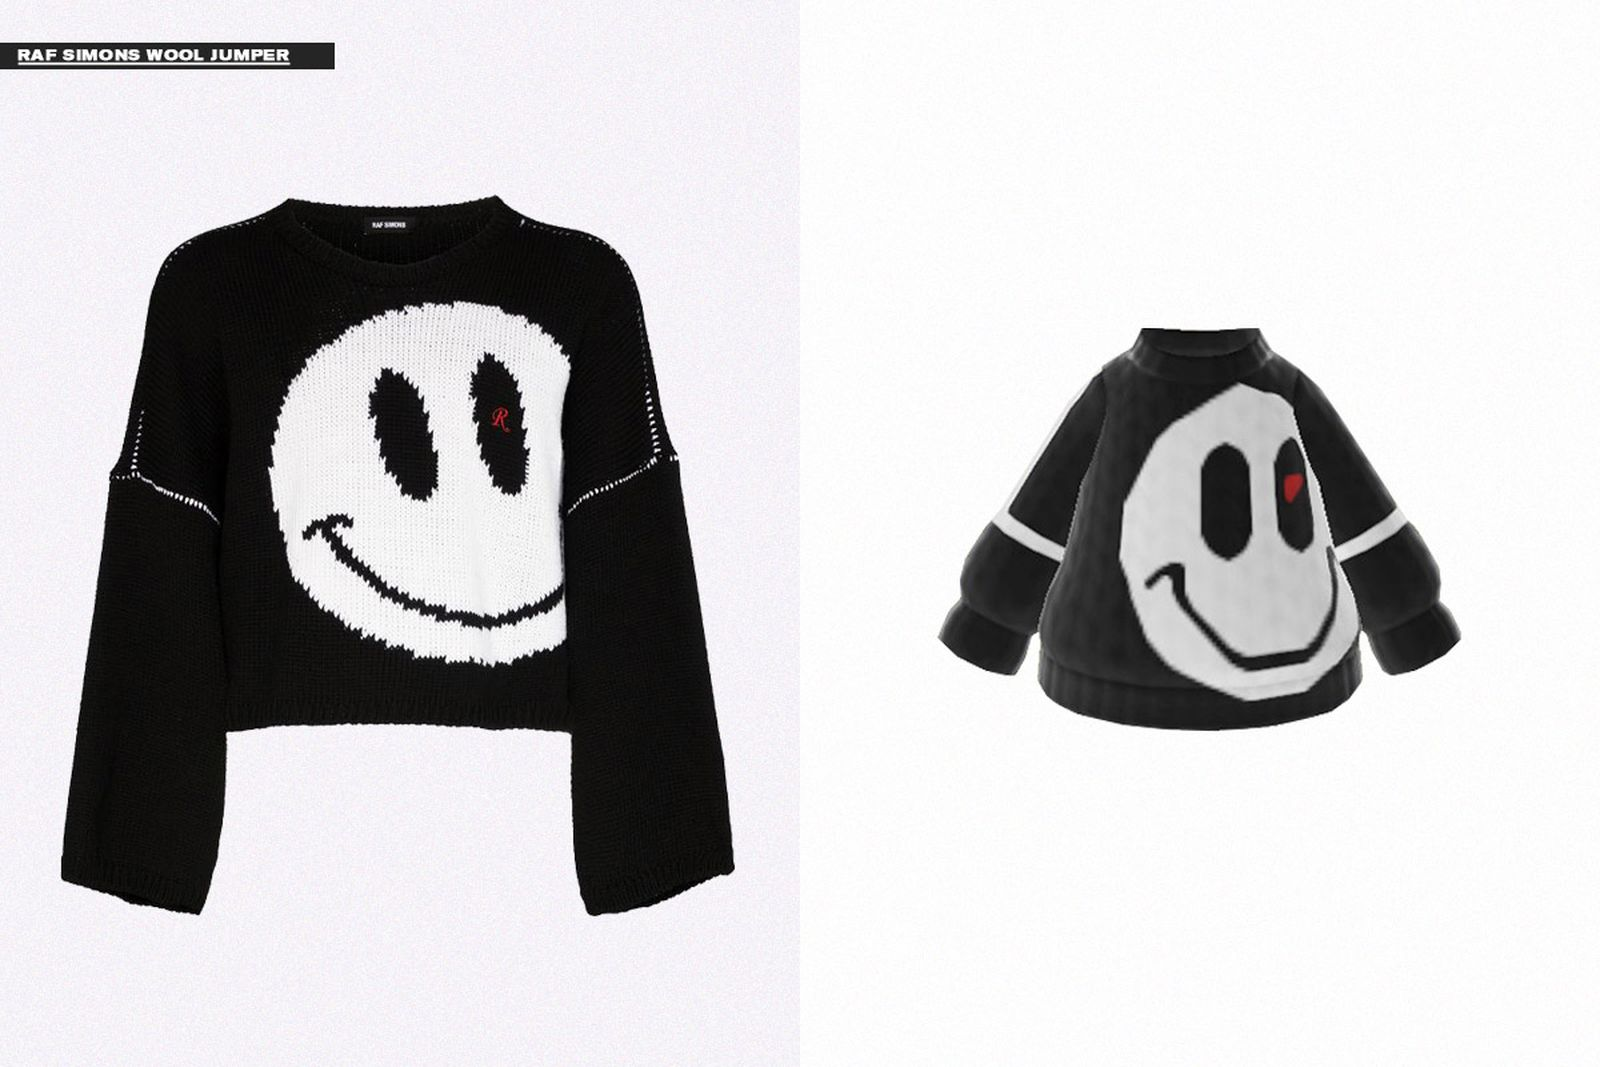 Some pieces from Klarna's virtual 'Animal Crossing' pop-up shop, rendered by Kara Chung of @animalcrossingfashionarchive.